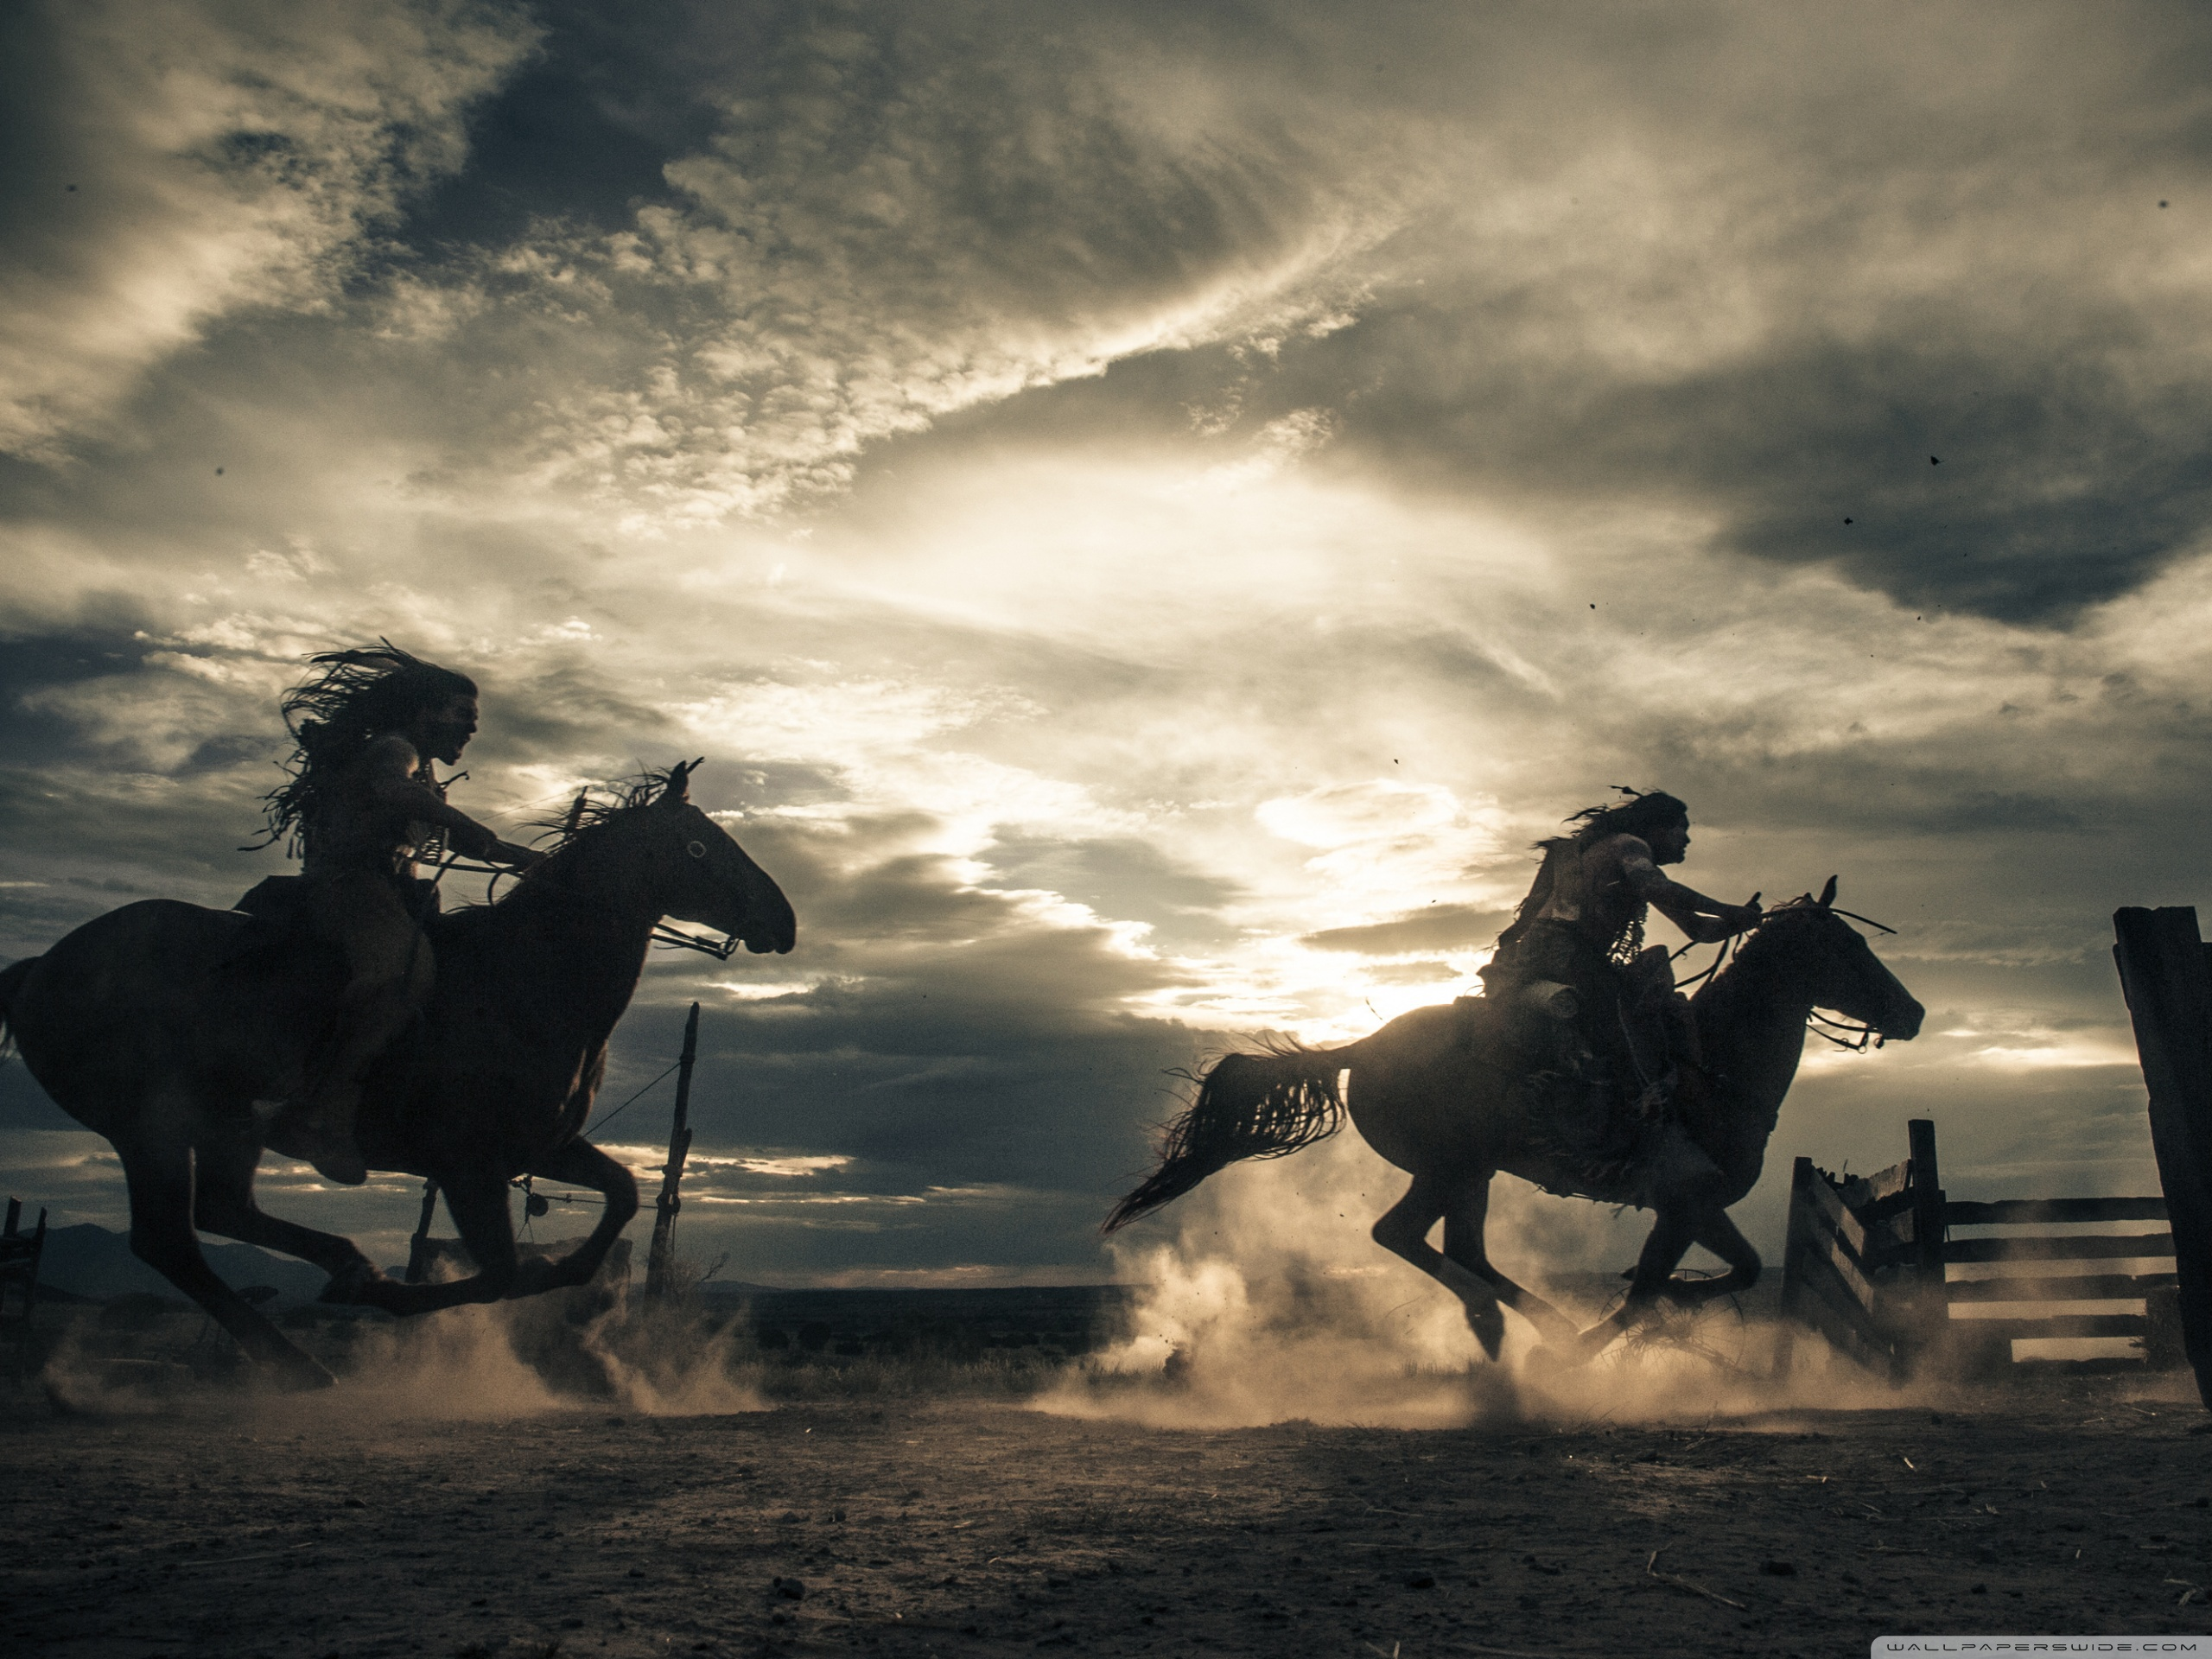 Riders Indians Western wallpapers and images   wallpapers pictures 2560x1920